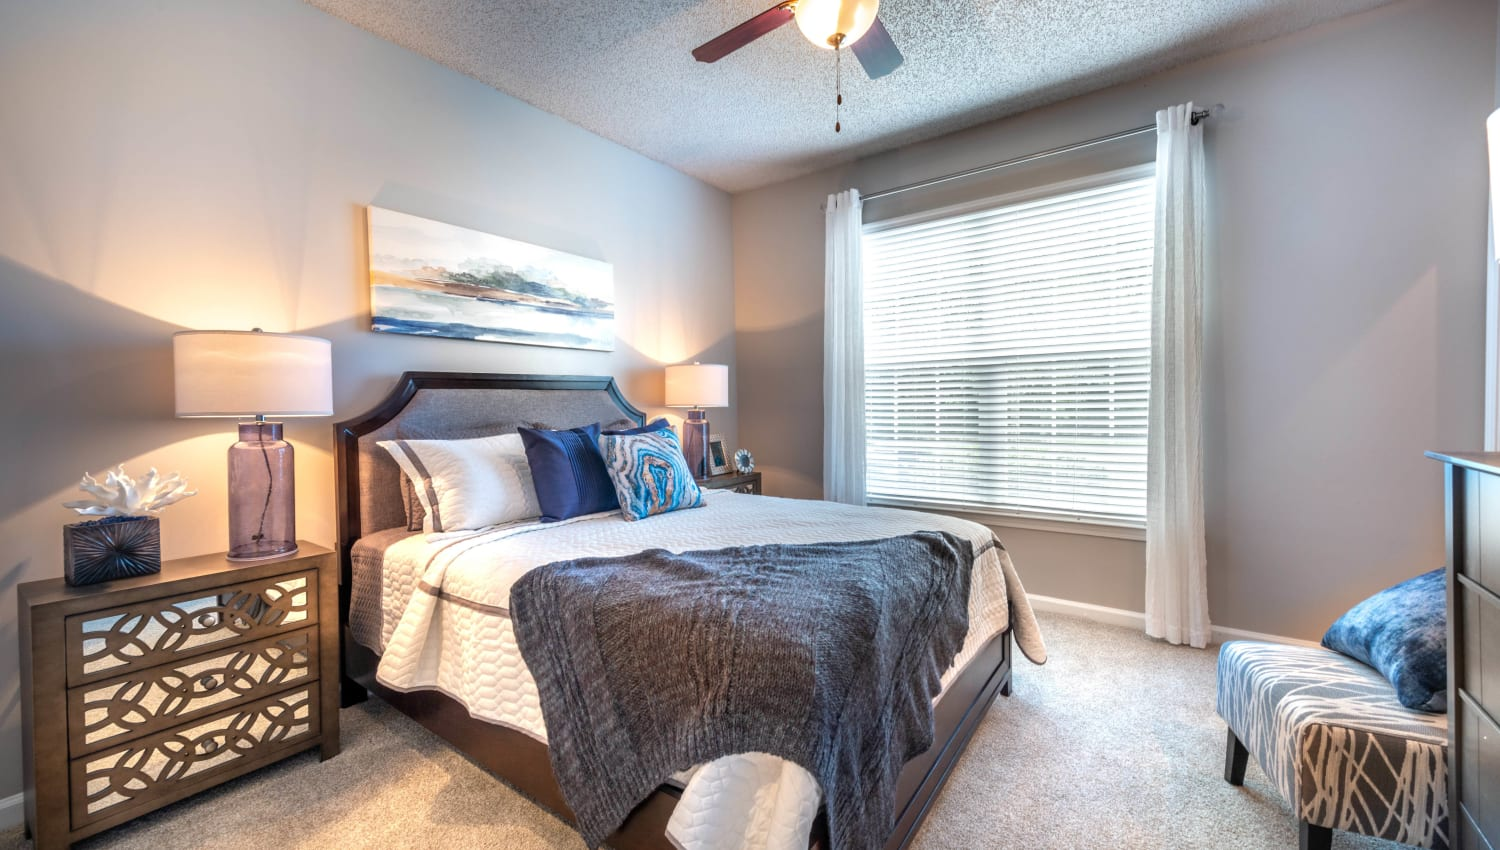 Plush carpeting and a ceiling fan in the guest bedroom of model home at Olympus Fenwick in Savannah, Georgia